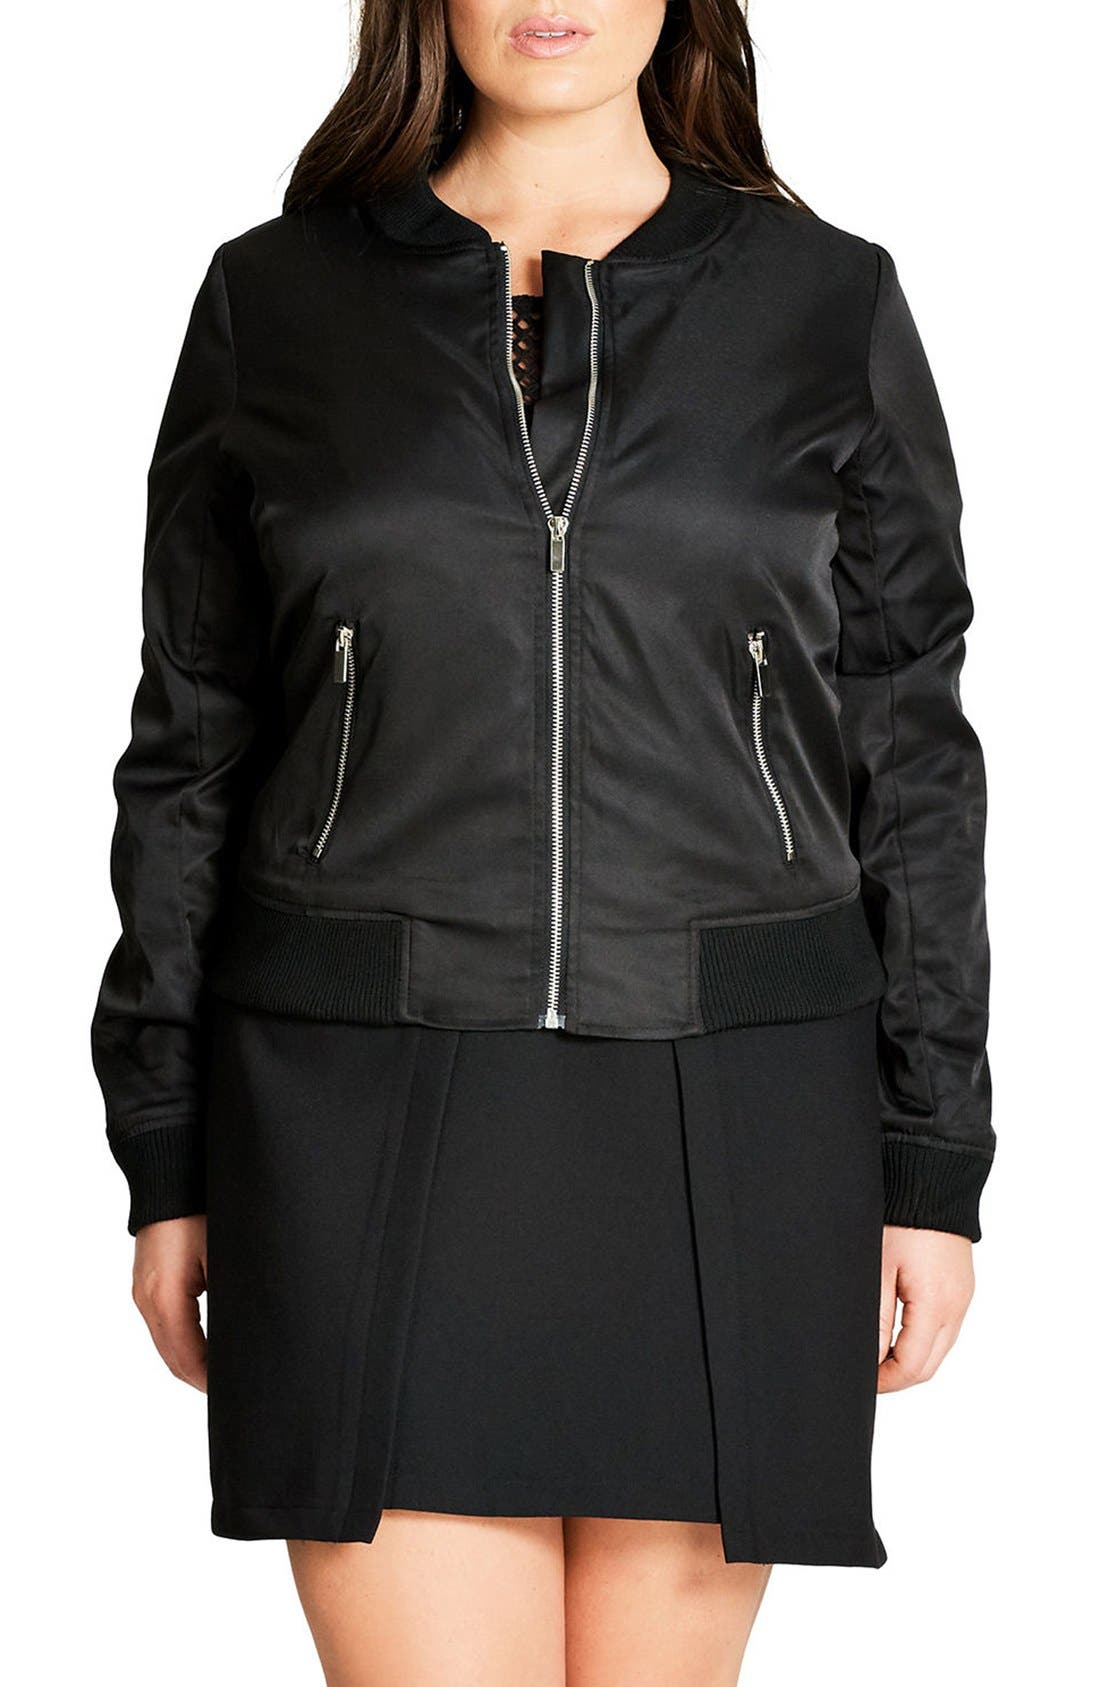 Main Image - City Chic Zip Front Bomber Jacket (Plus Size)